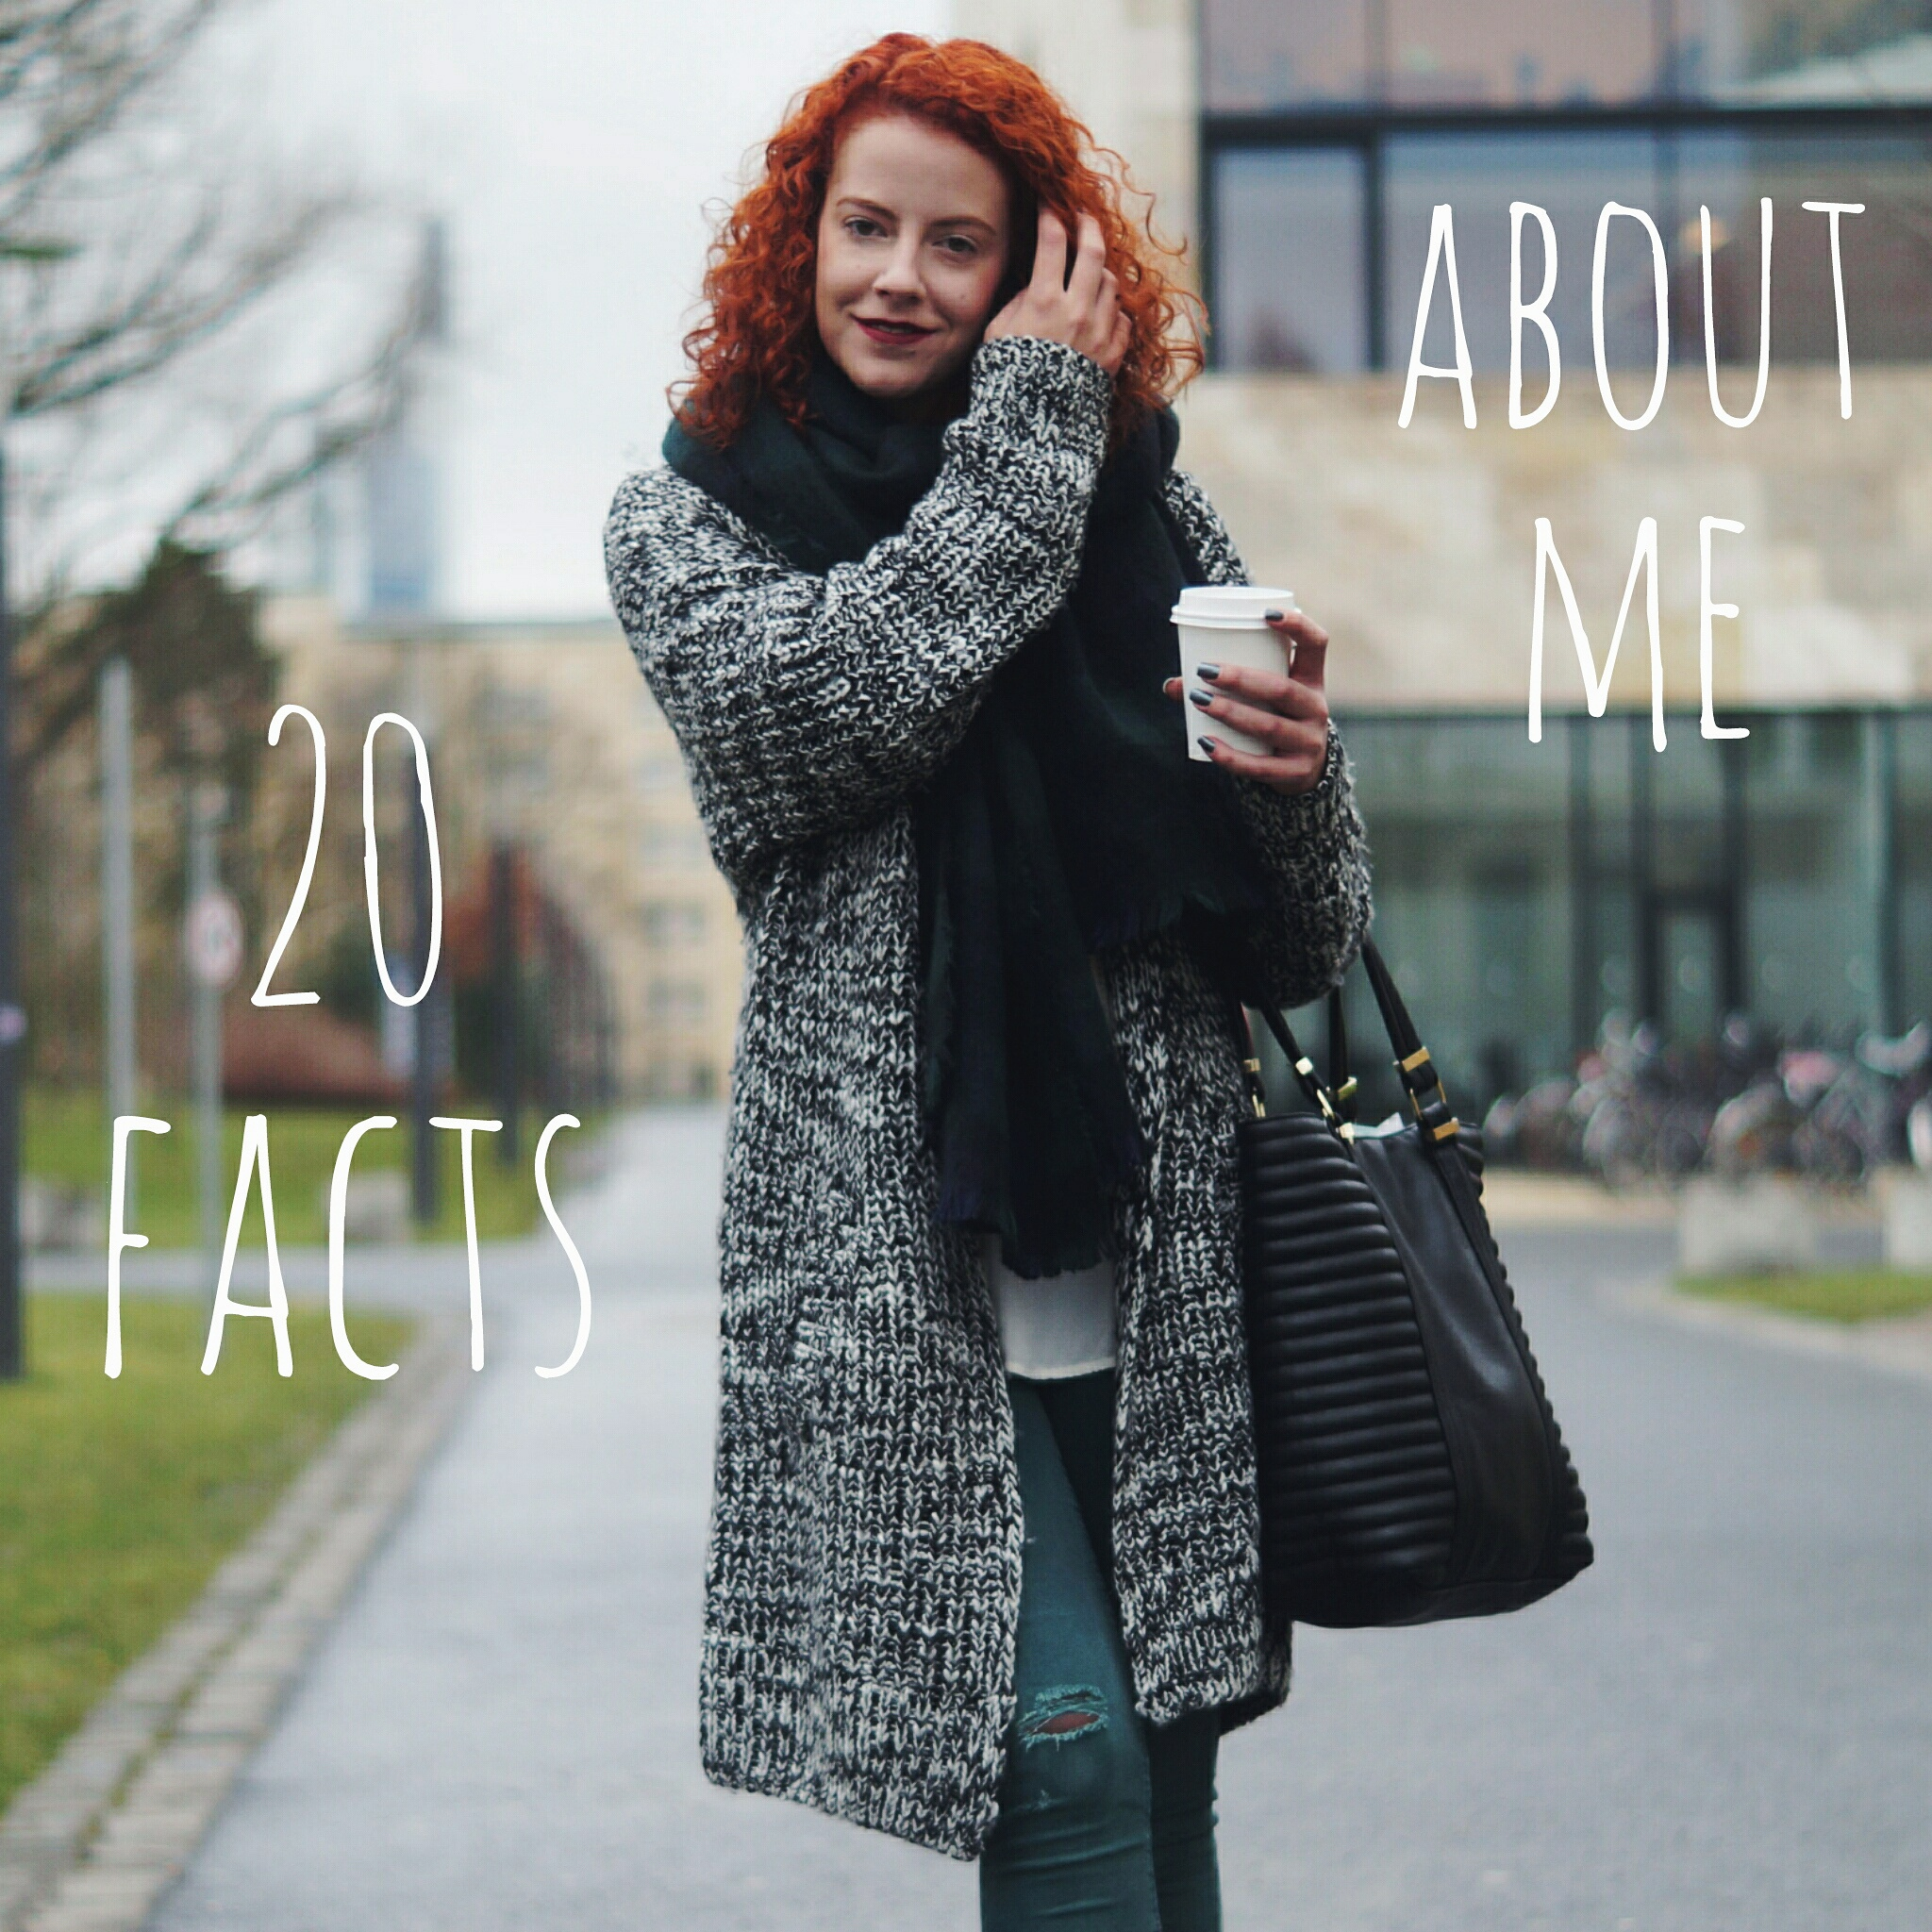 20facts